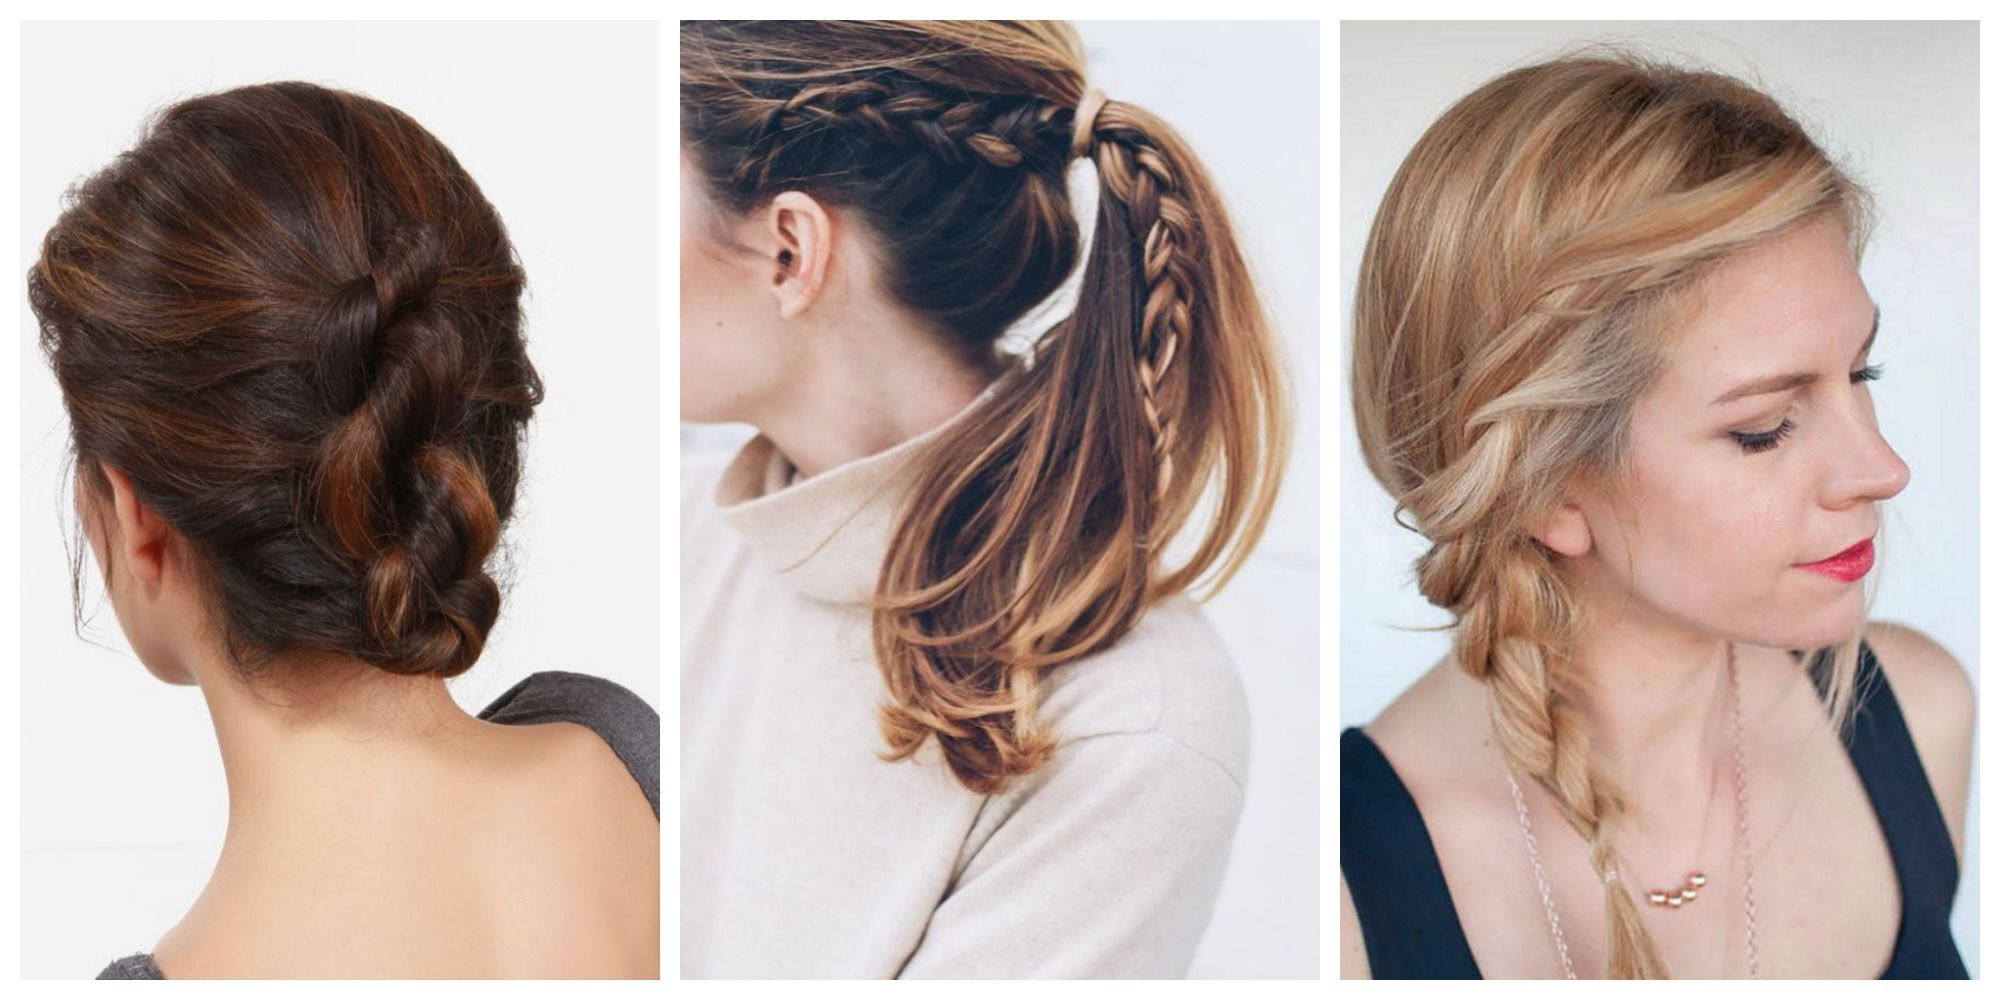 Female Hairstyle - Top 4  Trendy Celebrity Hairstyle Layers Unveiled!